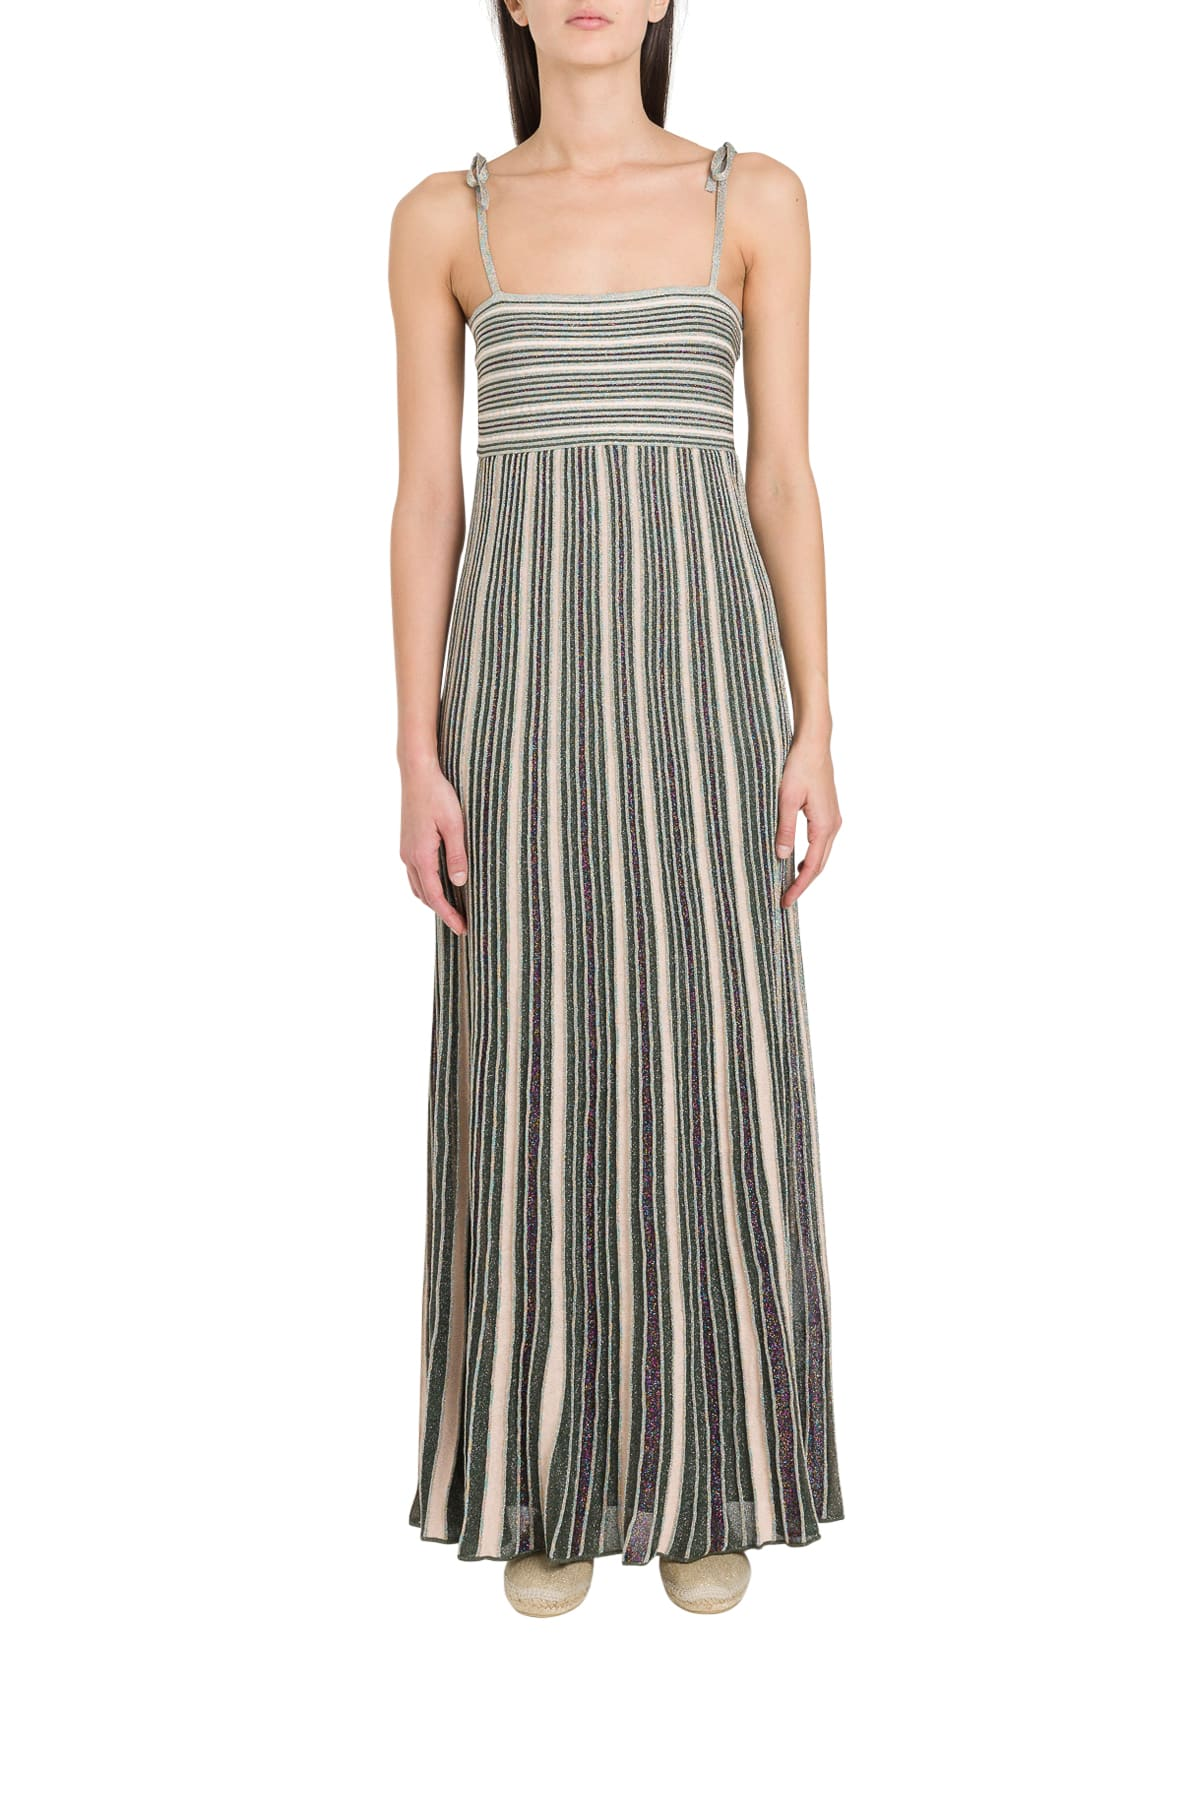 Buy M Missoni Ribbed Lurex Knit Dress online, shop M Missoni with free shipping